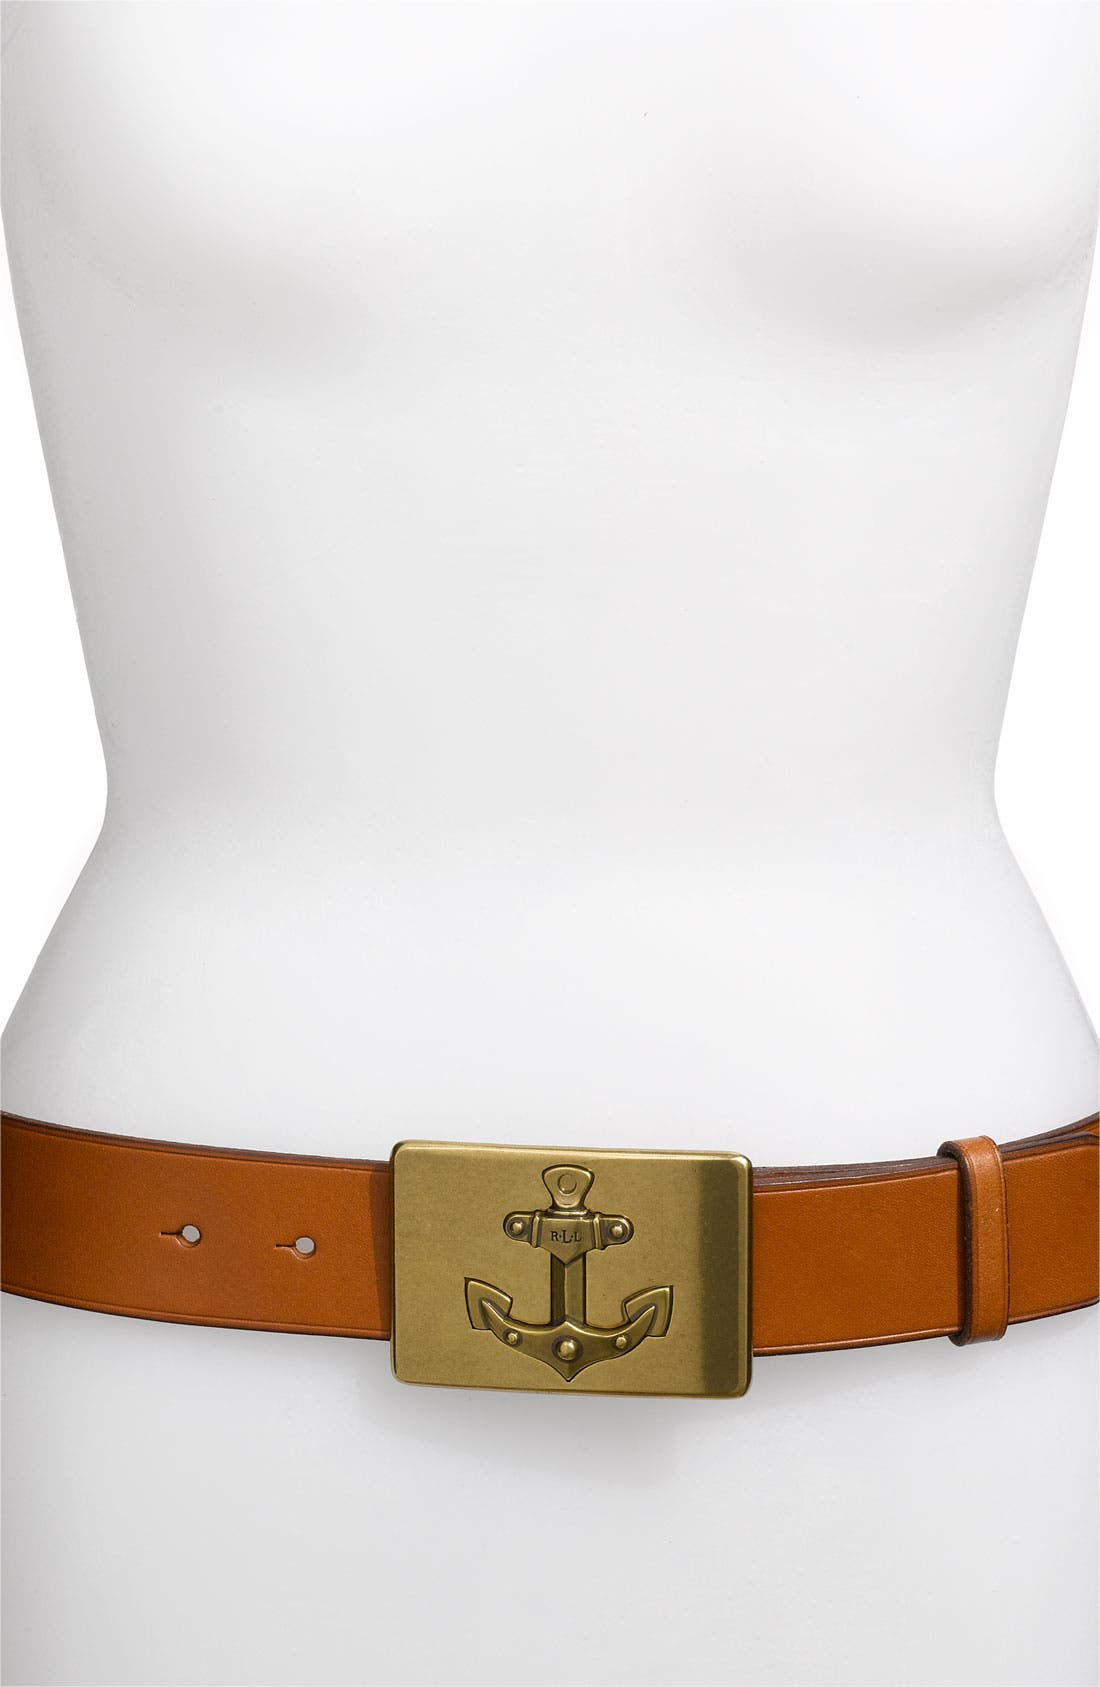 Alternate Image 1 Selected - Lauren by Ralph Anchor Buckle Belt